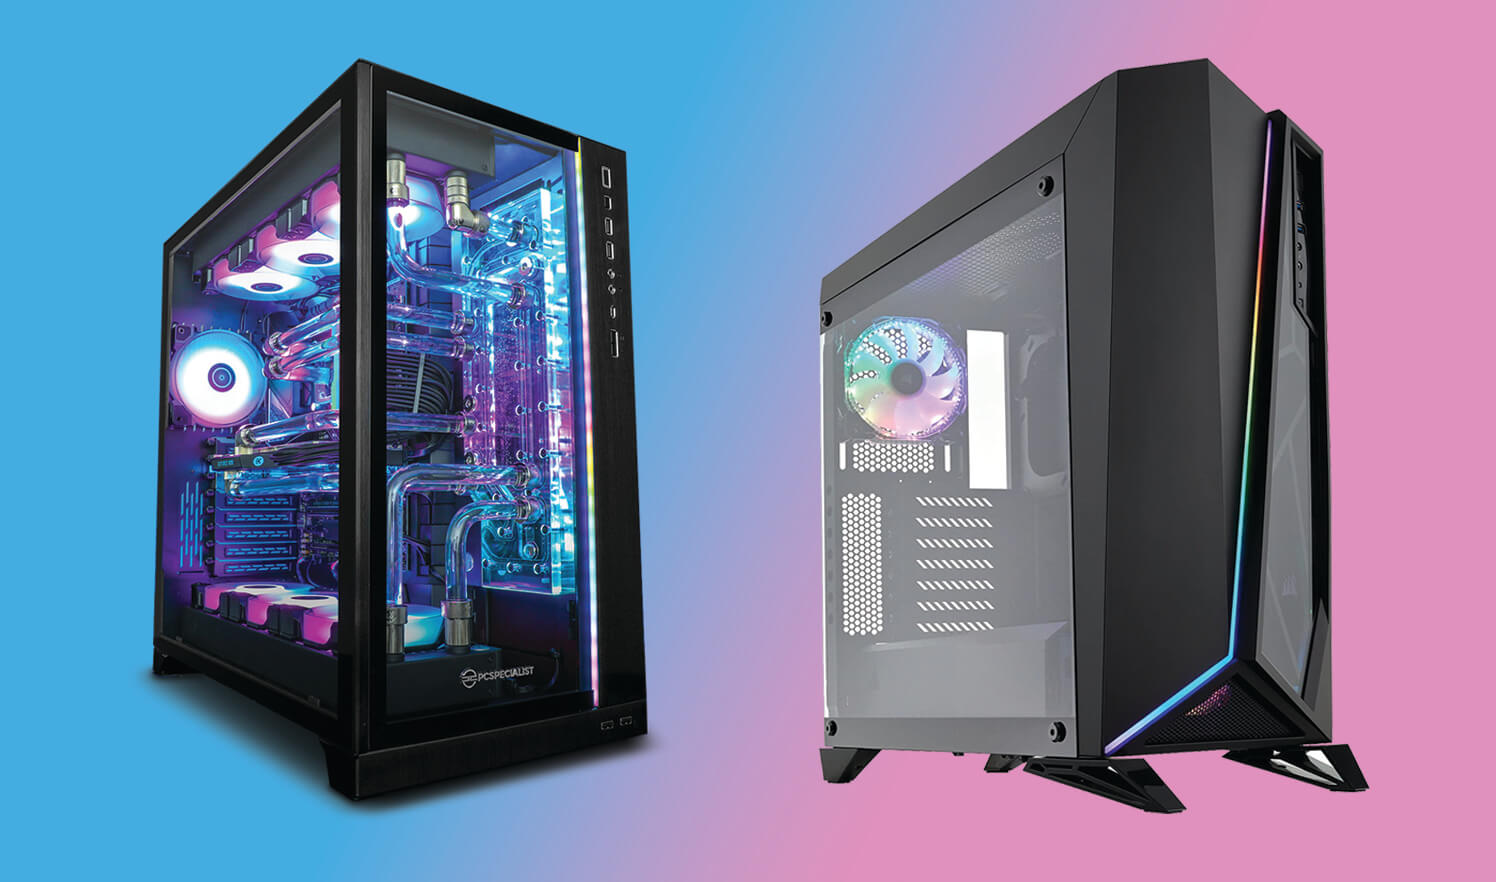 Most Unique PC Cases You Can Actually Buy